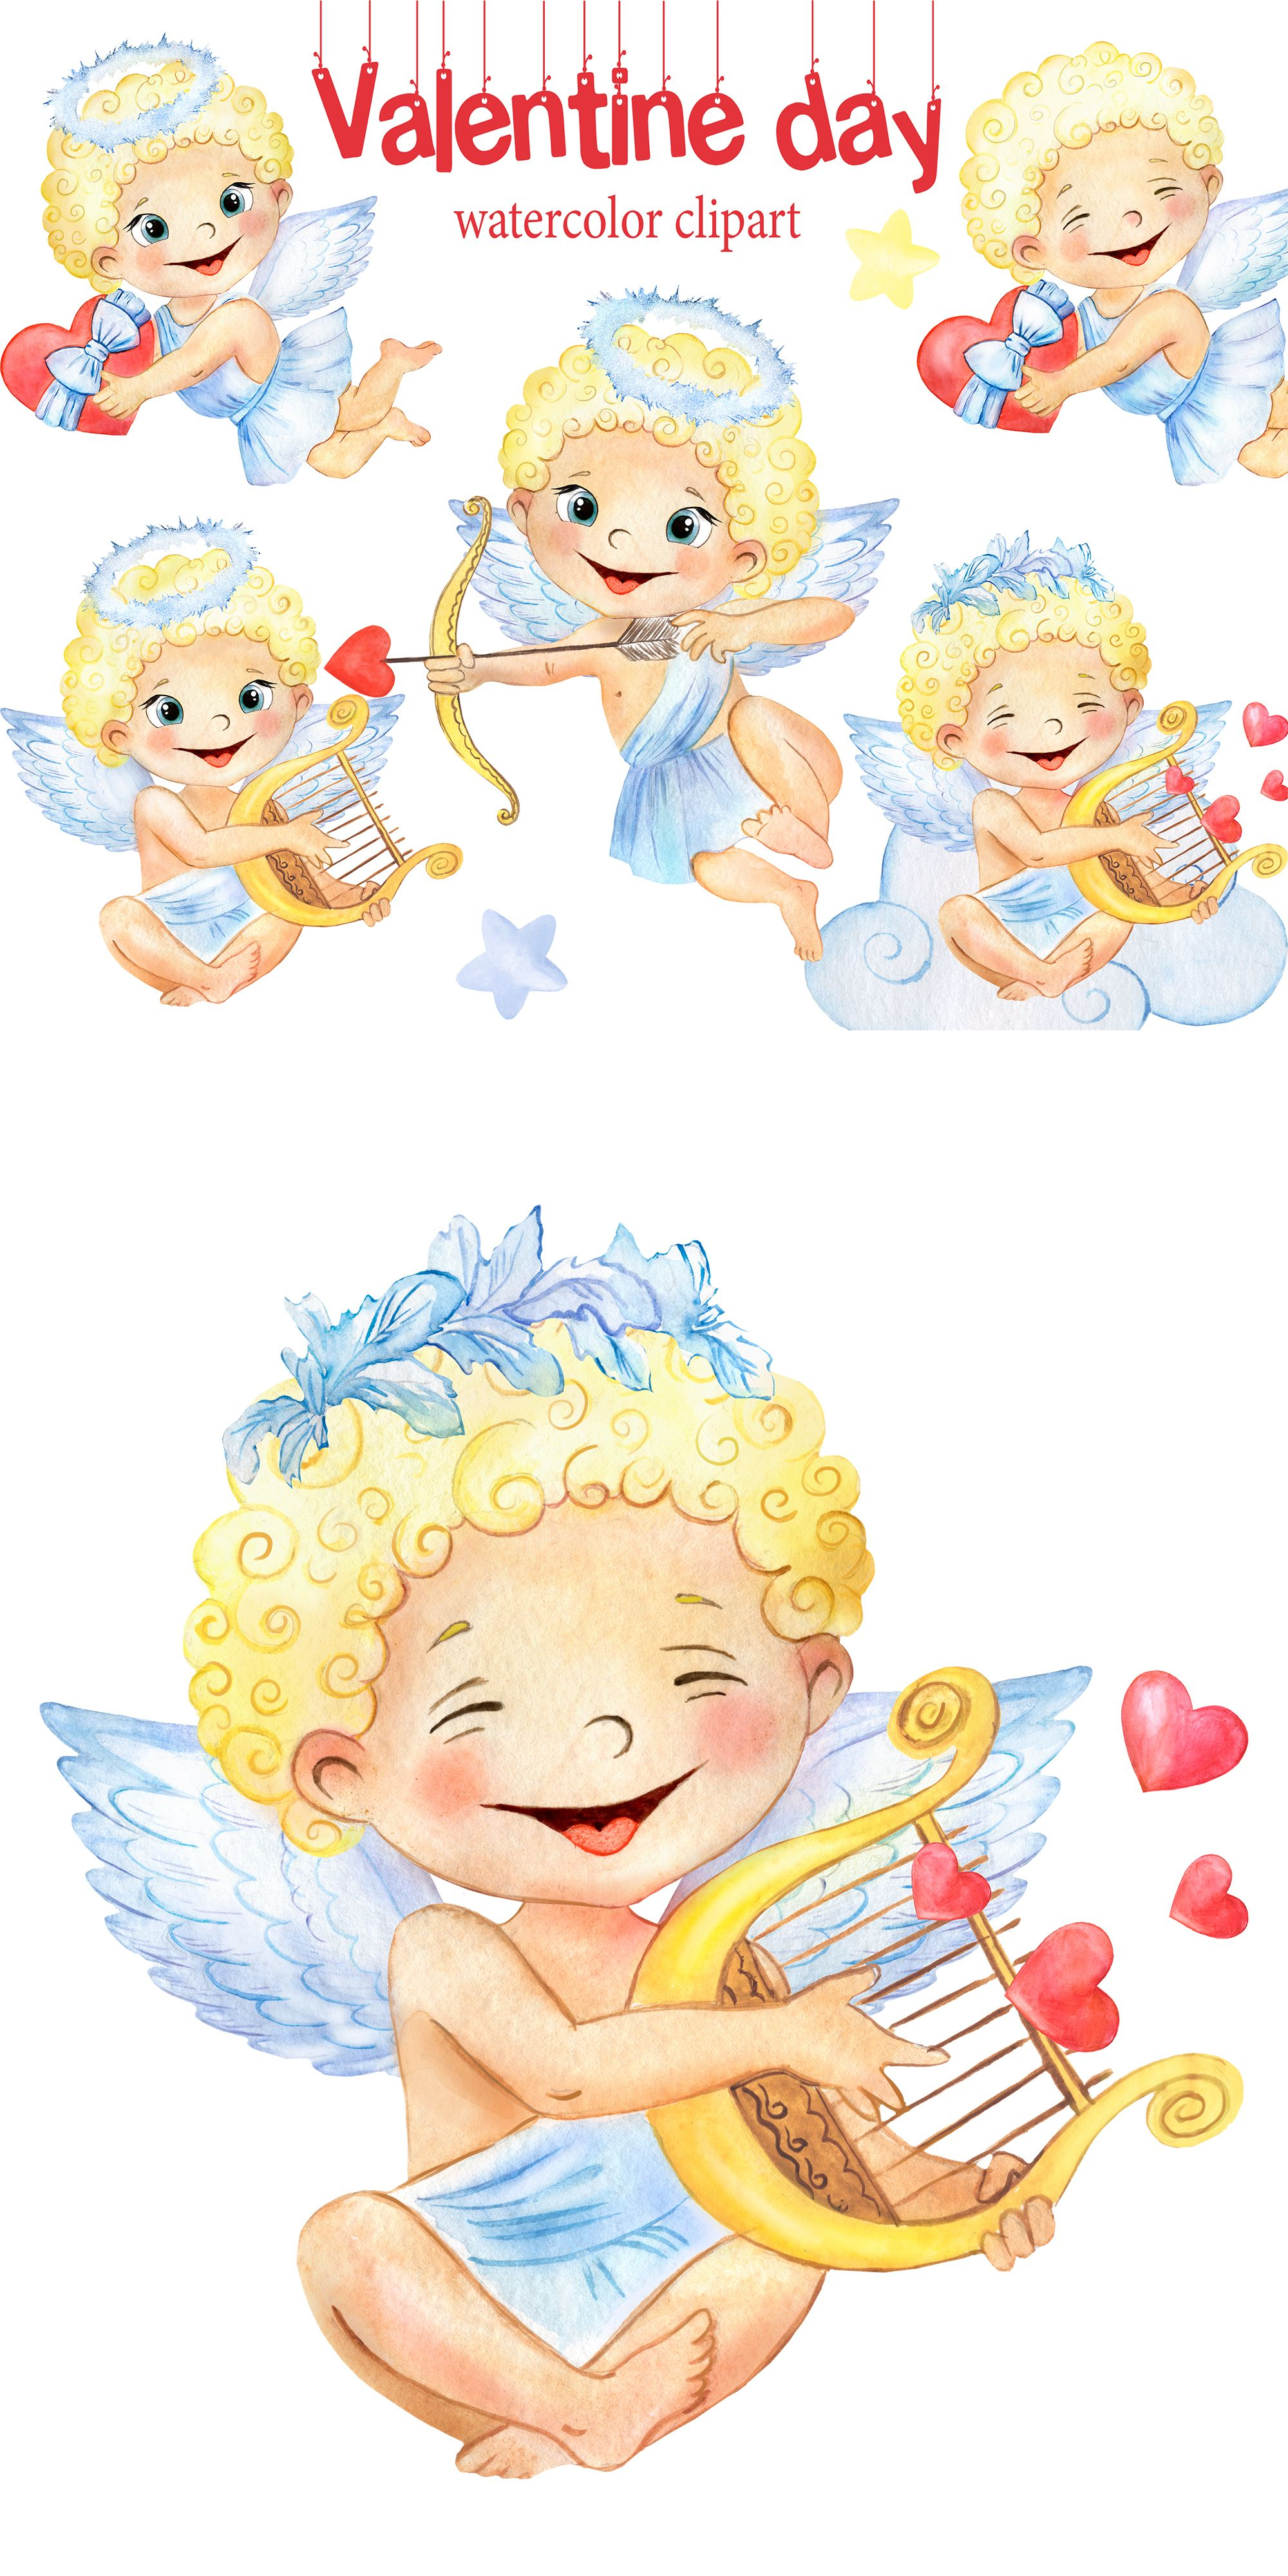 Watercolor Cupid Clipart Valentines Day Cupid Png Baby Etsy In 2021 Happy Valentines Day Clipart Valentines Day Clipart Watercolor Valentines